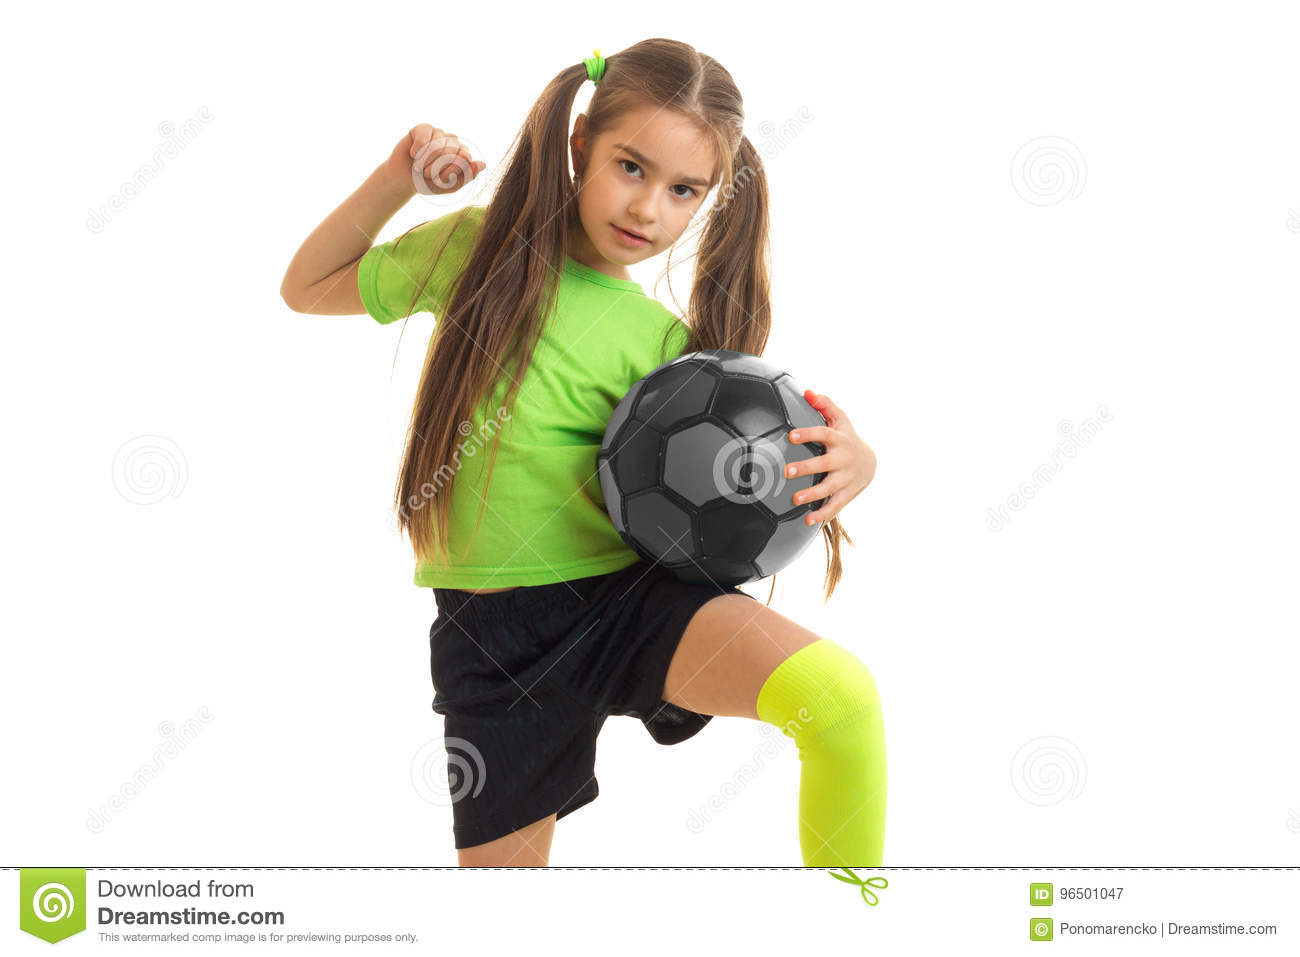 938df3cb0 Cute Little Girl In Green Uniform Playing With Soccer Ball Stock ...